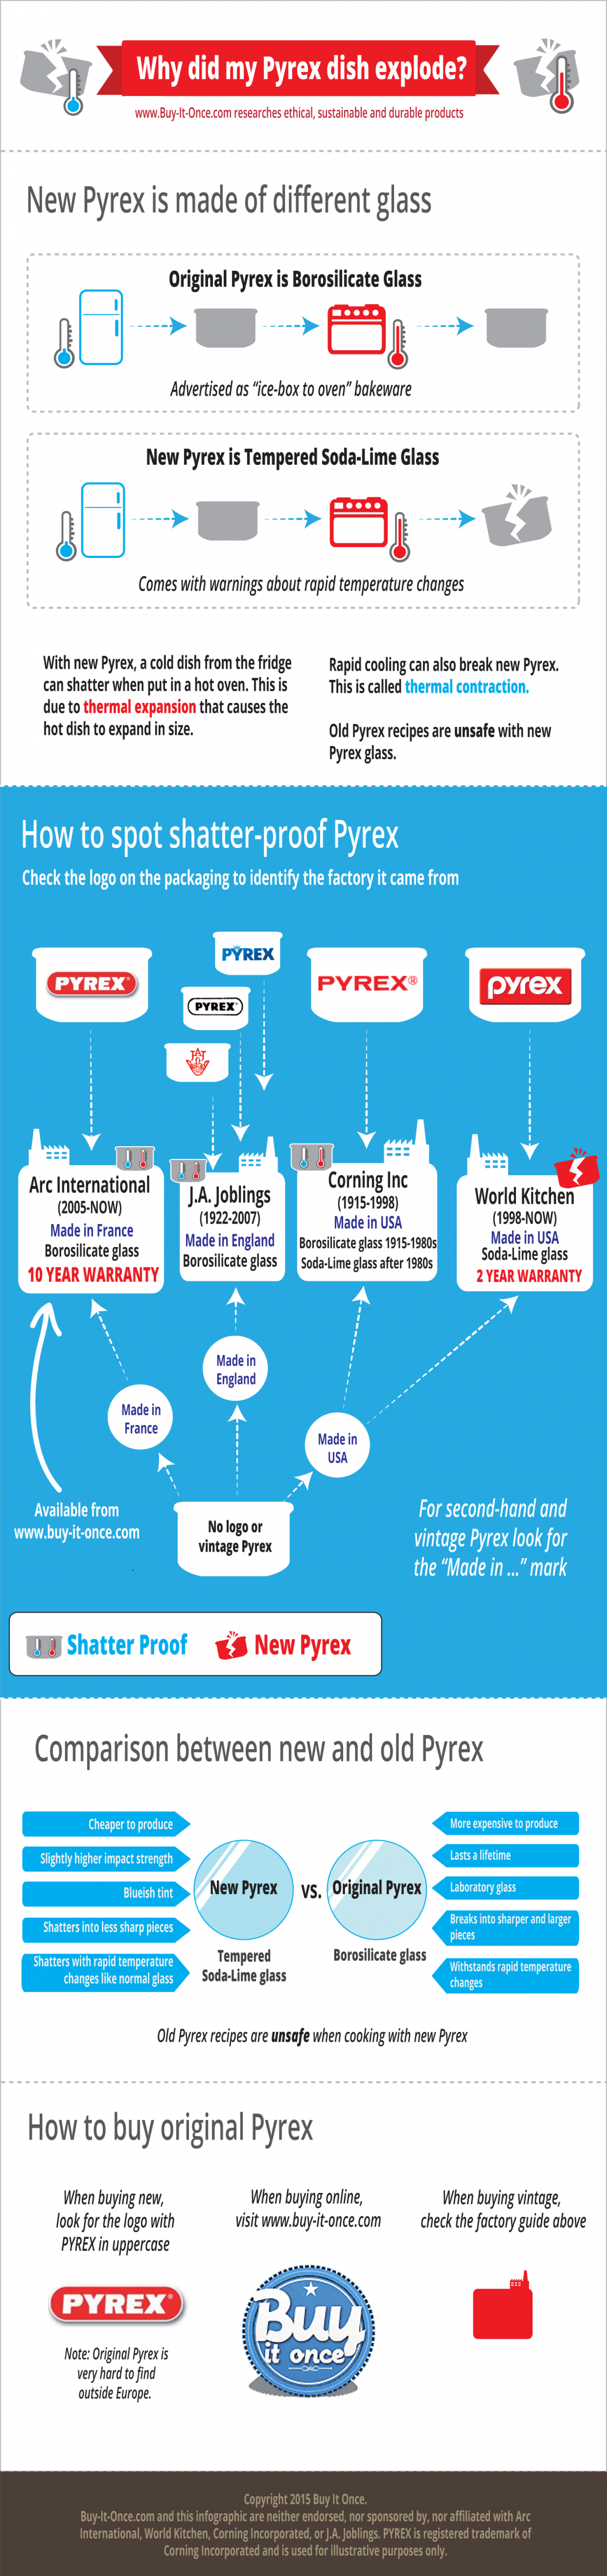 Why did my Pyrex dish explode? Infographic